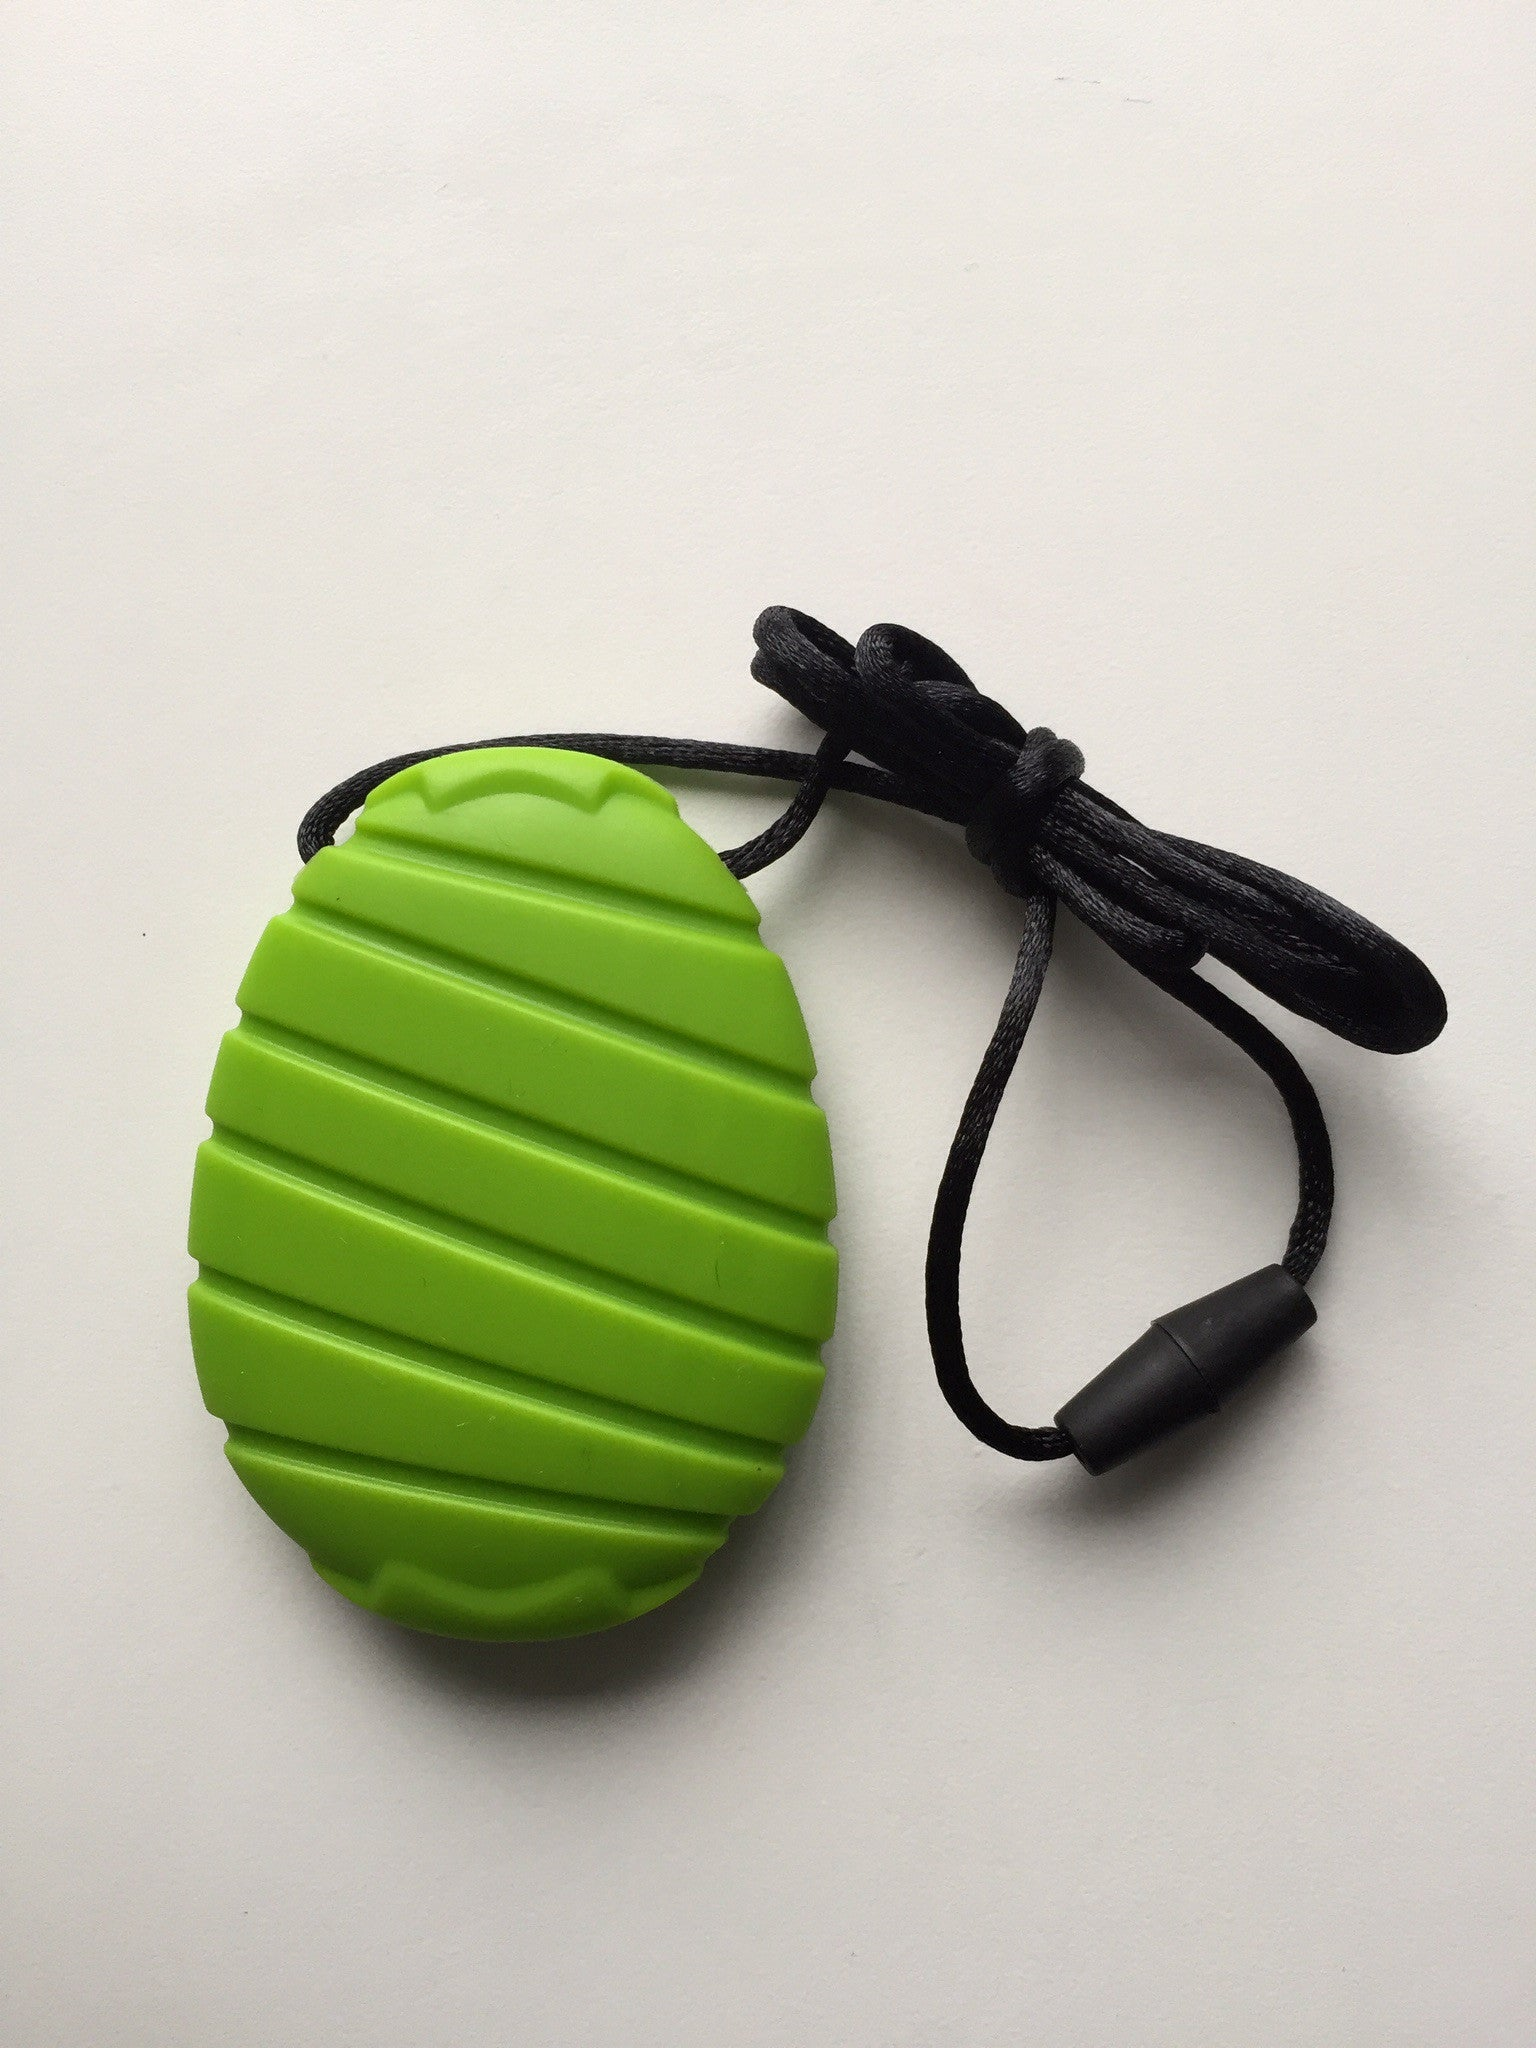 GREEN CHEW PENDANT sensory chewing autism ADHD ASD uk